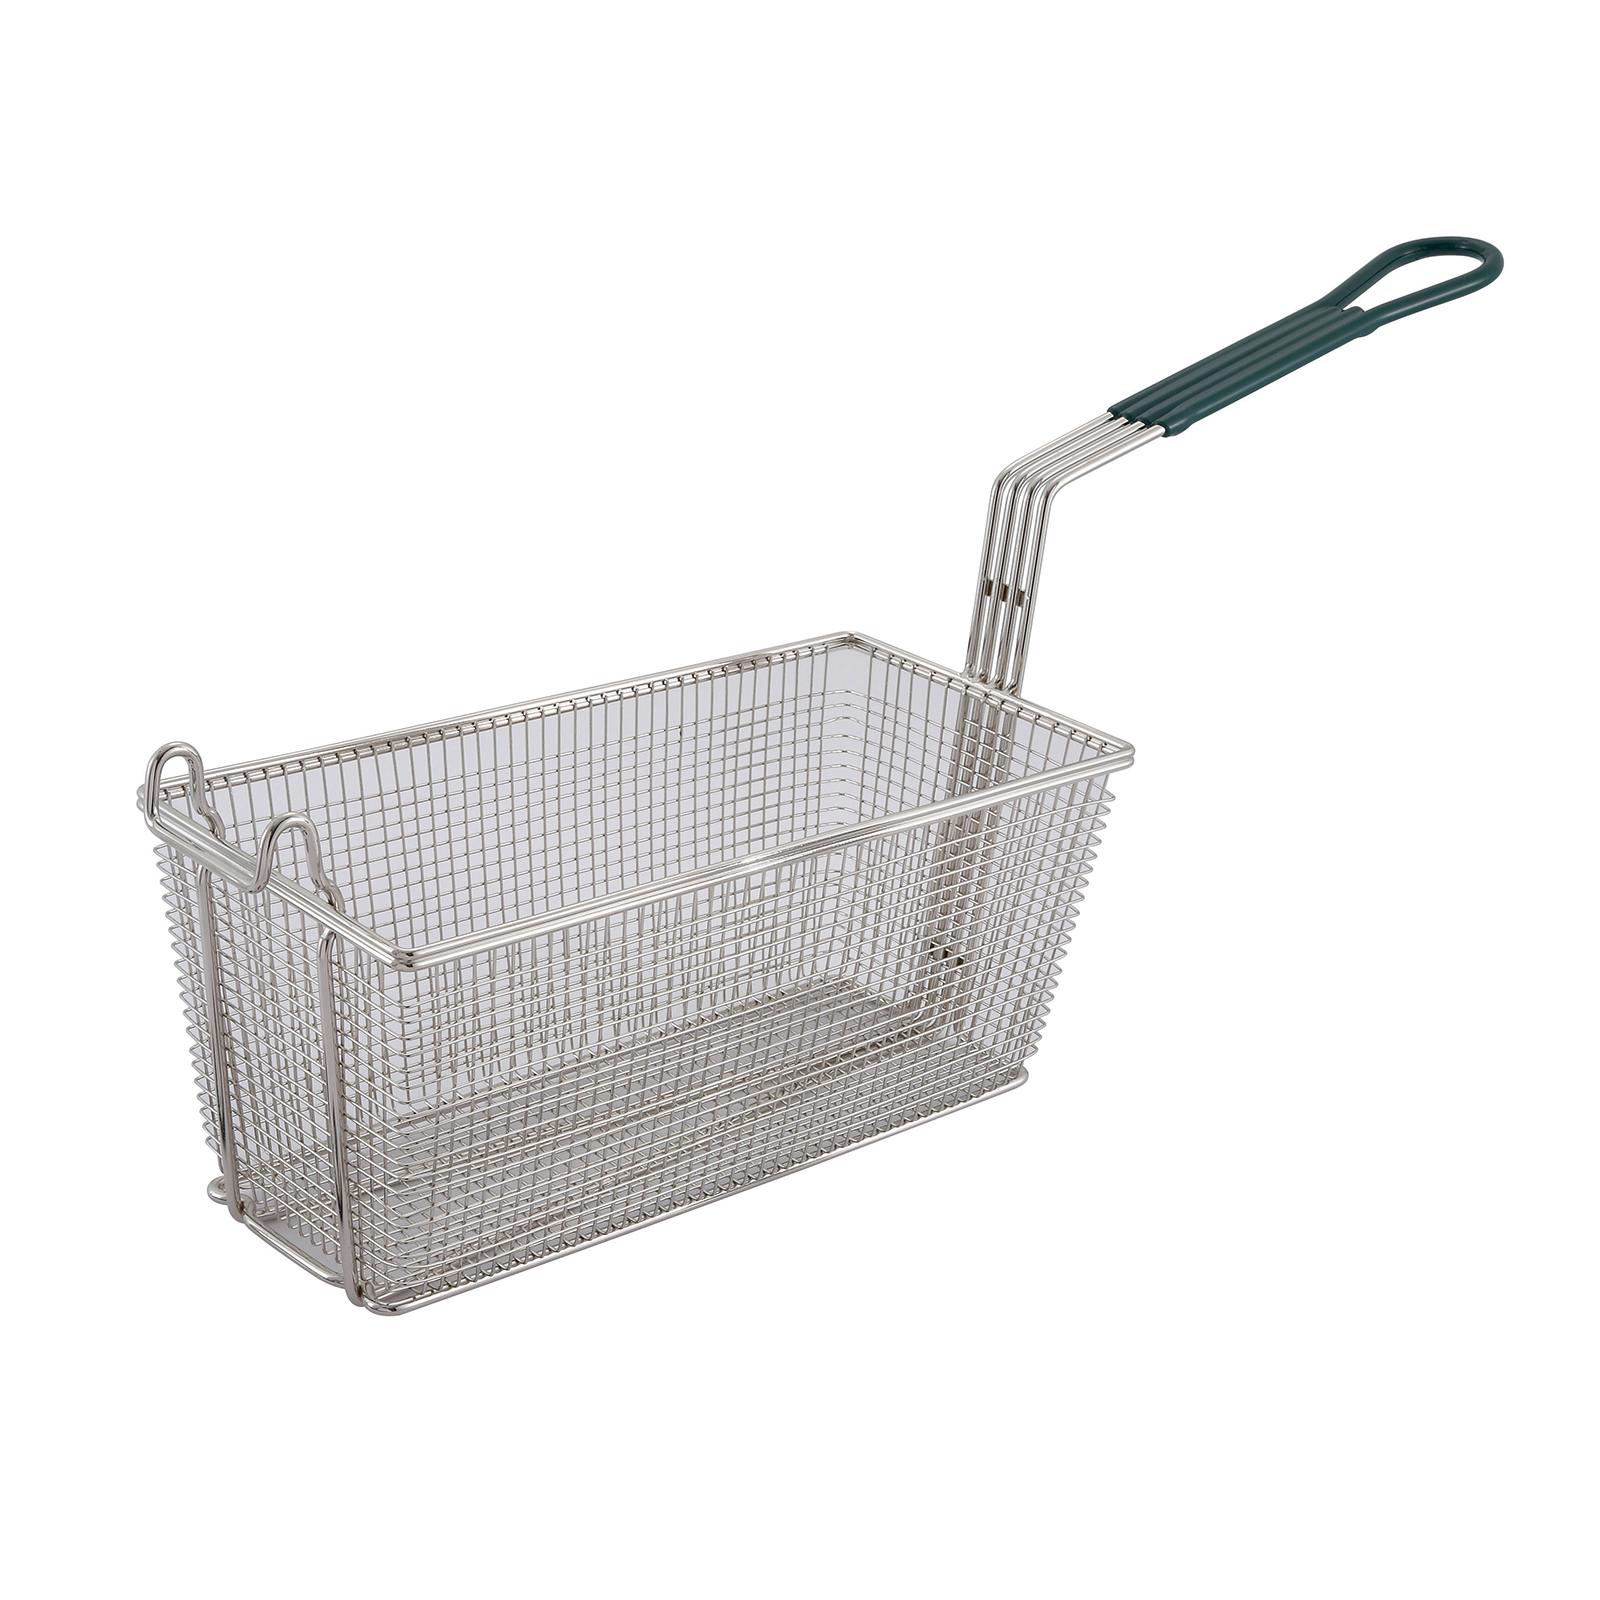 Winco FB-30 fryer basket